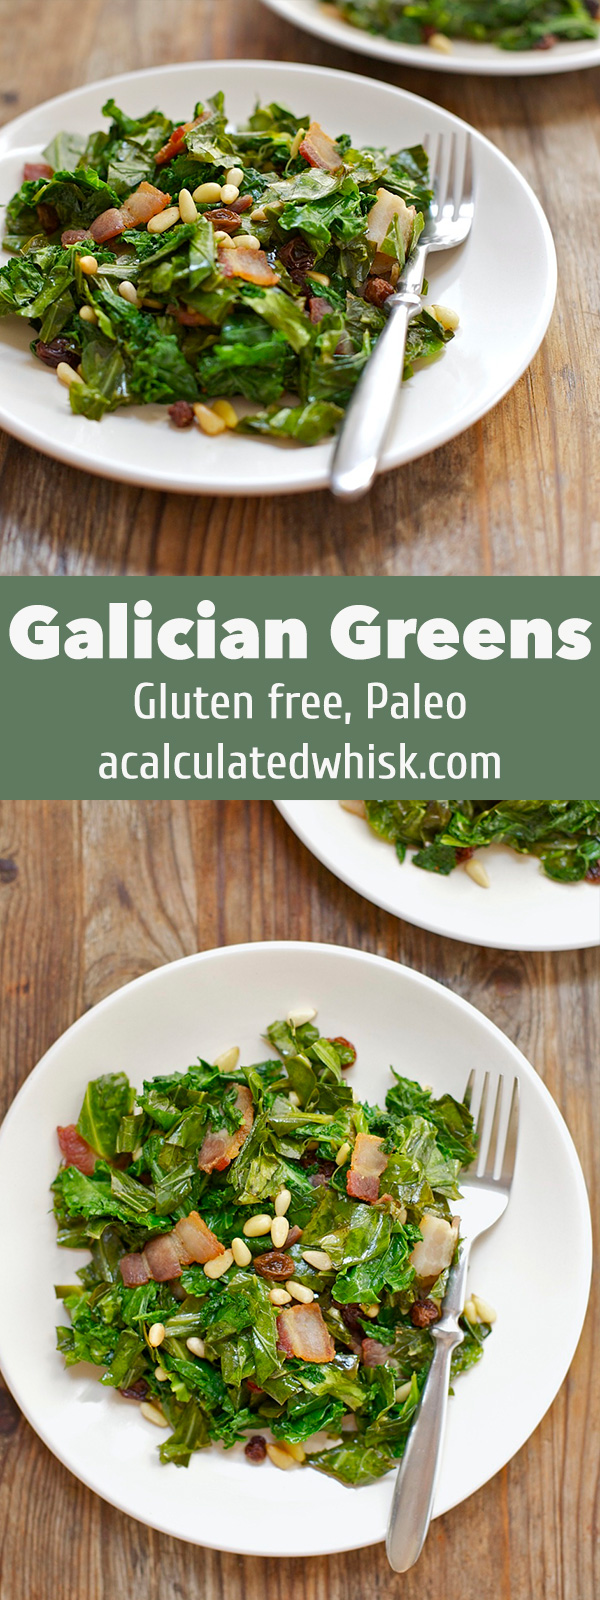 Galician Greens | acalculatedwhisk.com